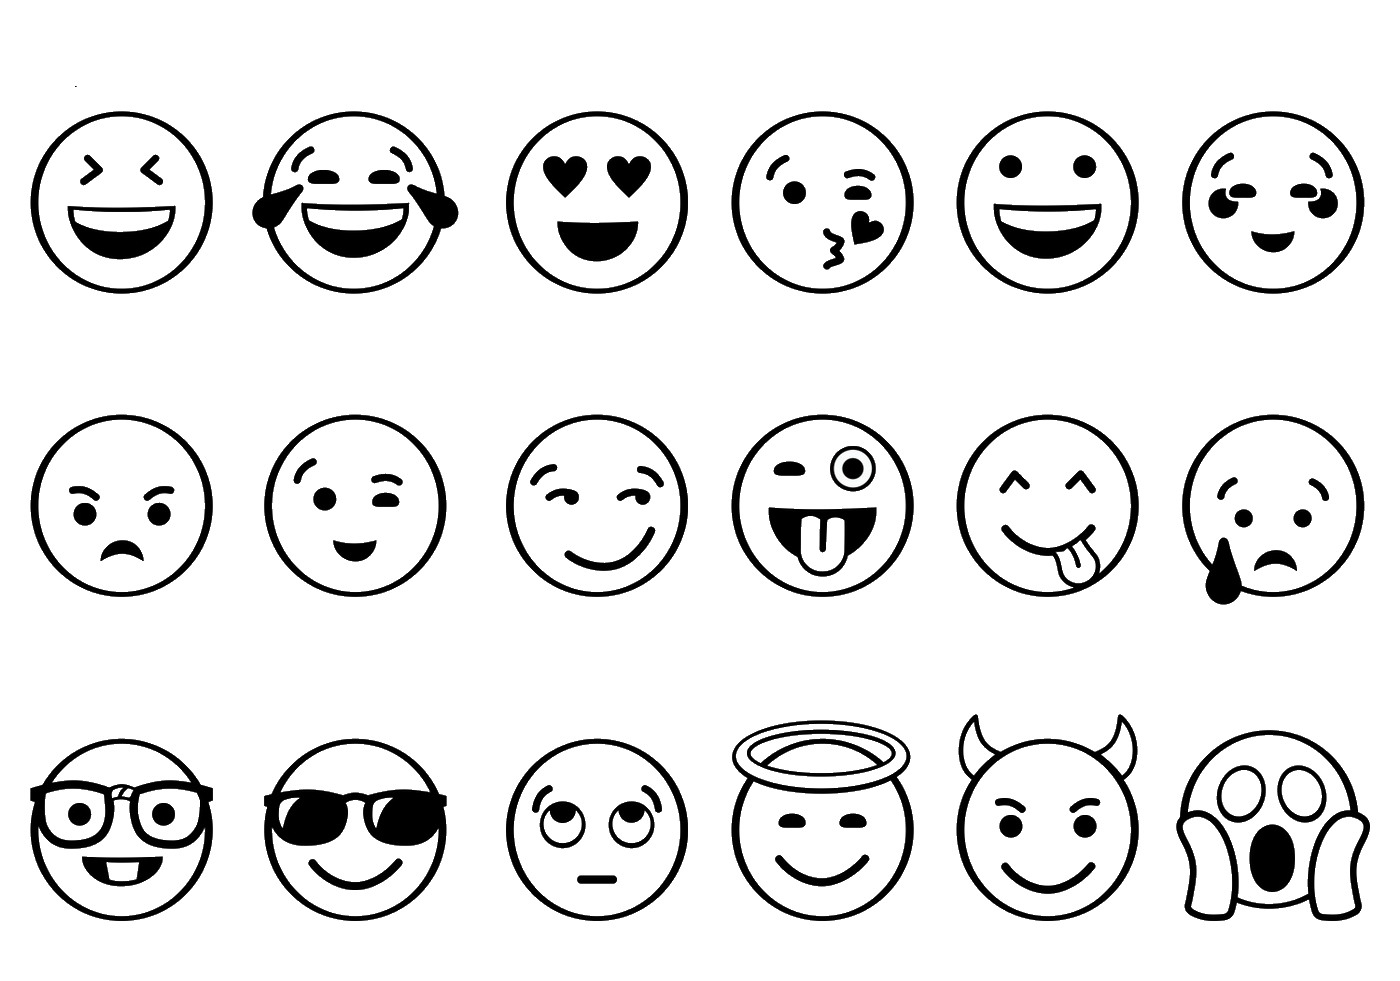 graphic regarding Emoji Faces Printable called 23 Printable Emoji Coloring Internet pages Pics Totally free COLORING Webpages